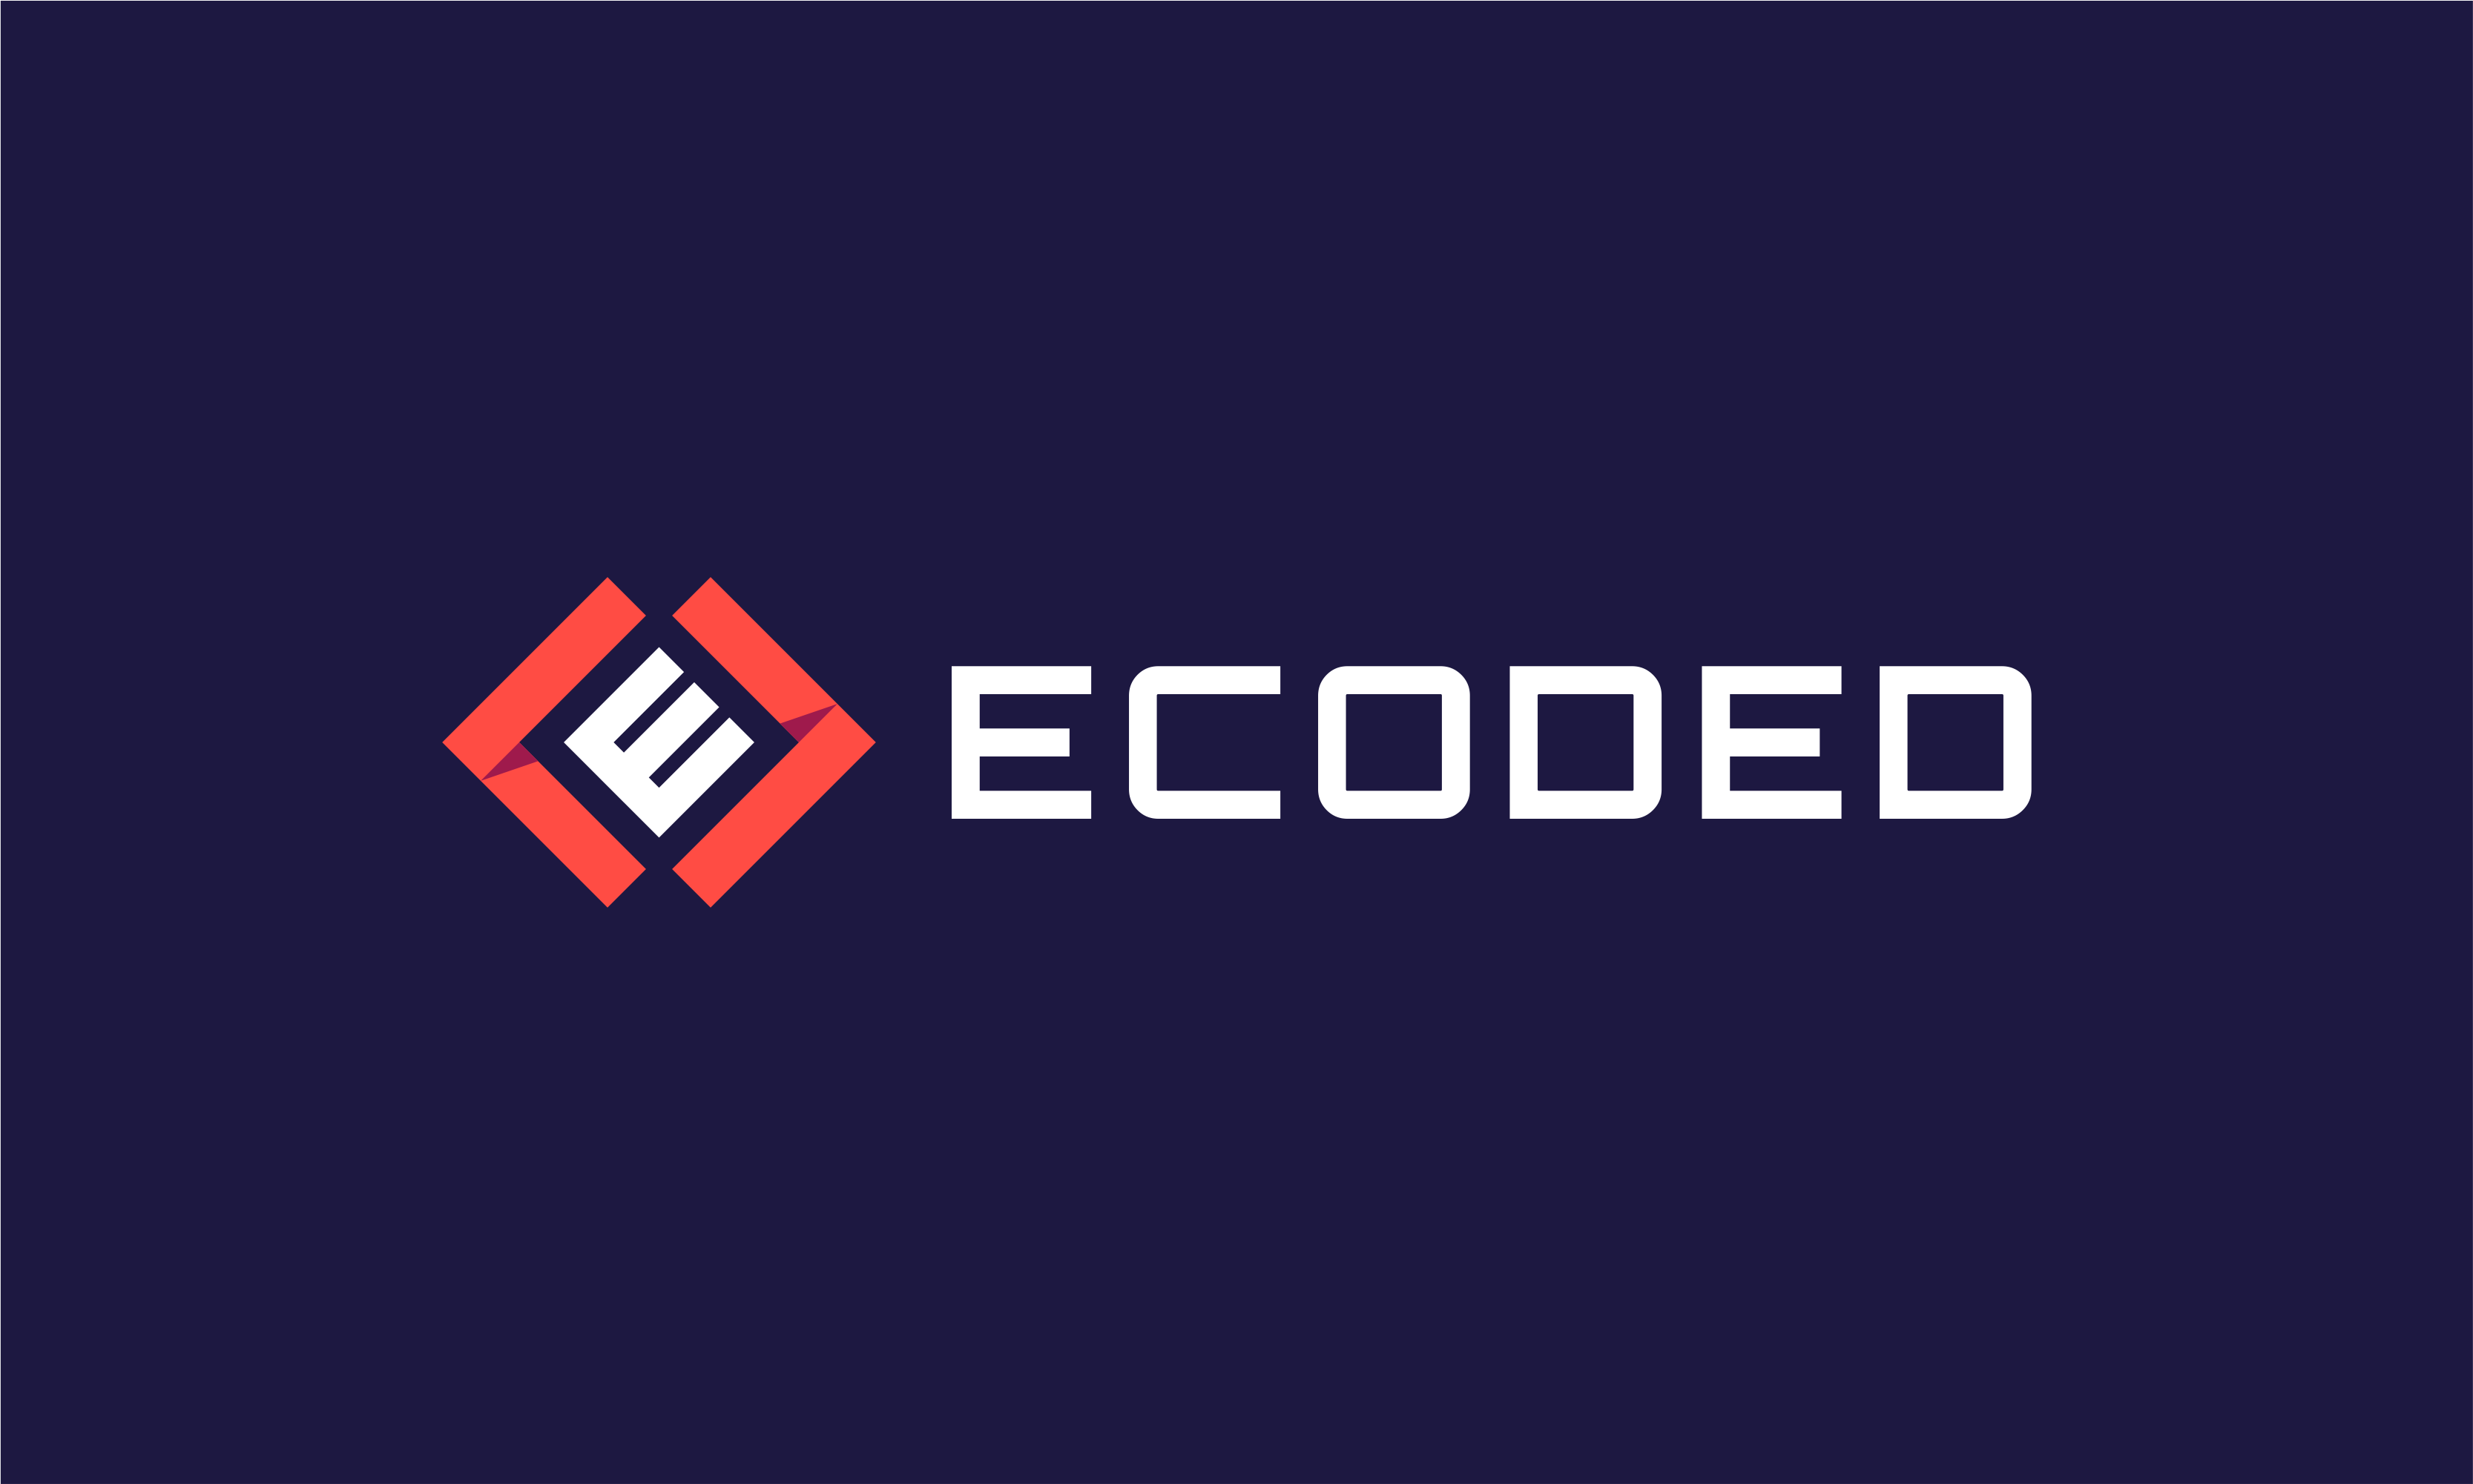 Ecoded logo